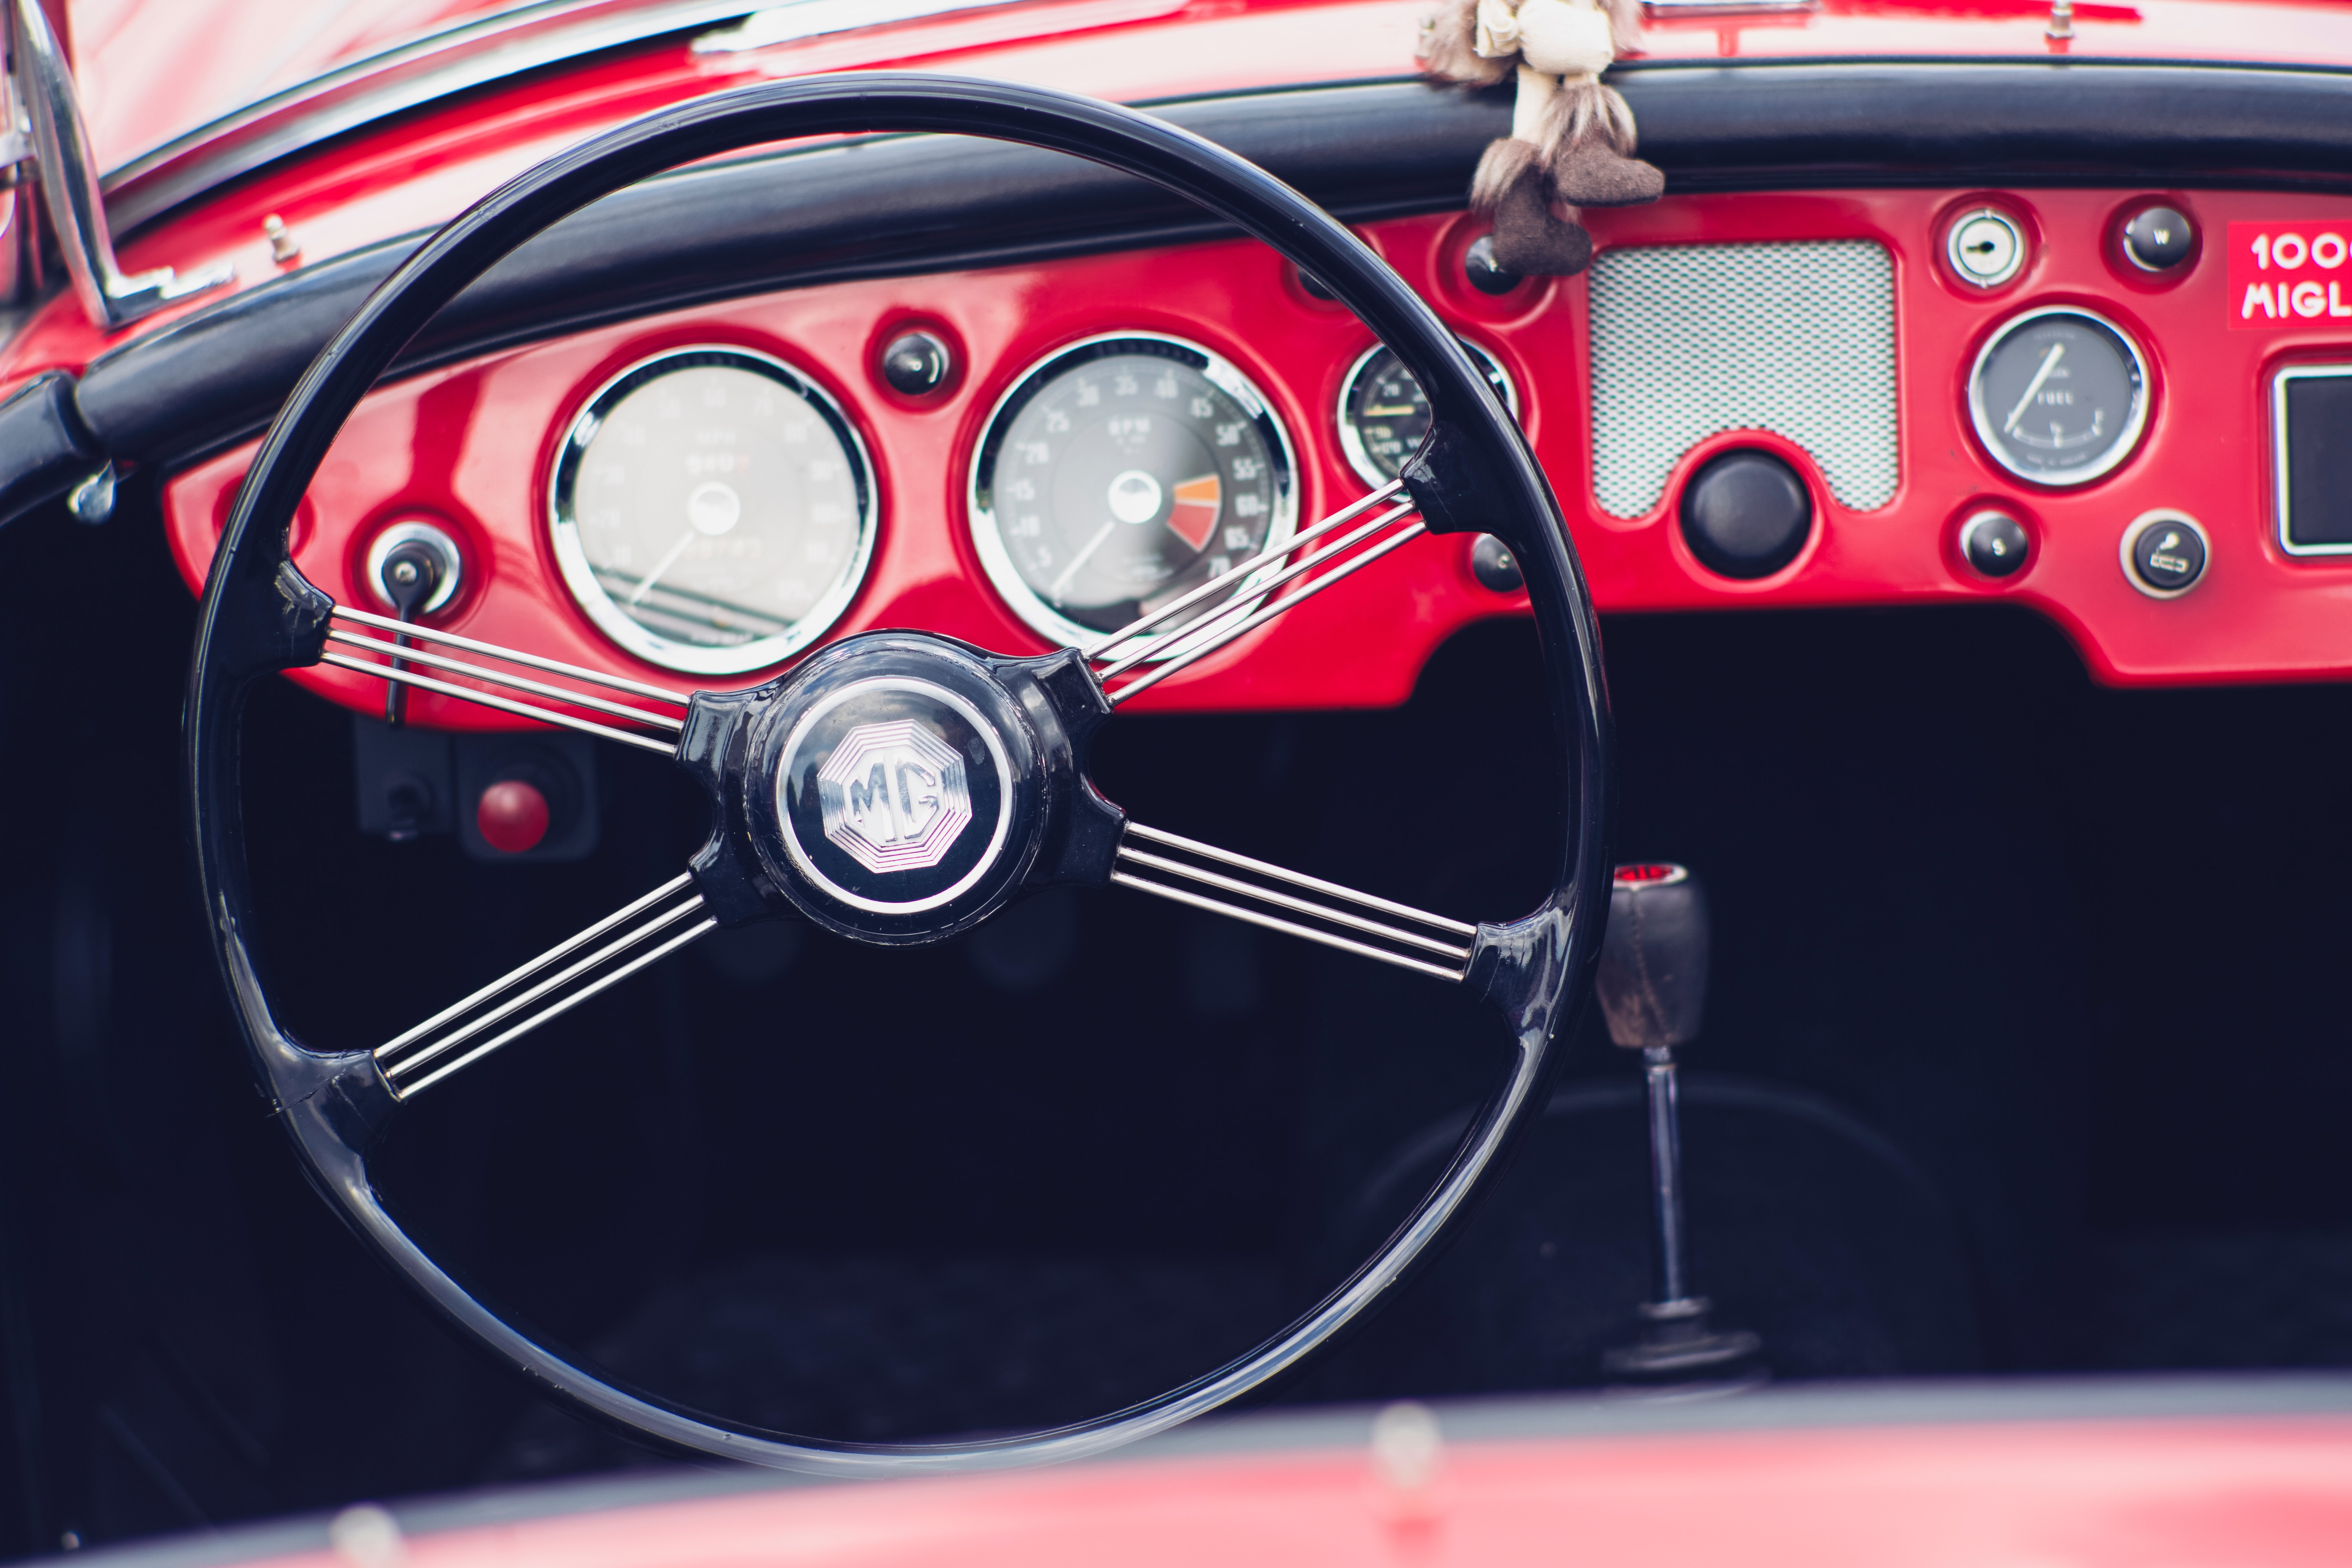 Voiture d'époque (c) Photo by Markus Spiske on Unsplash